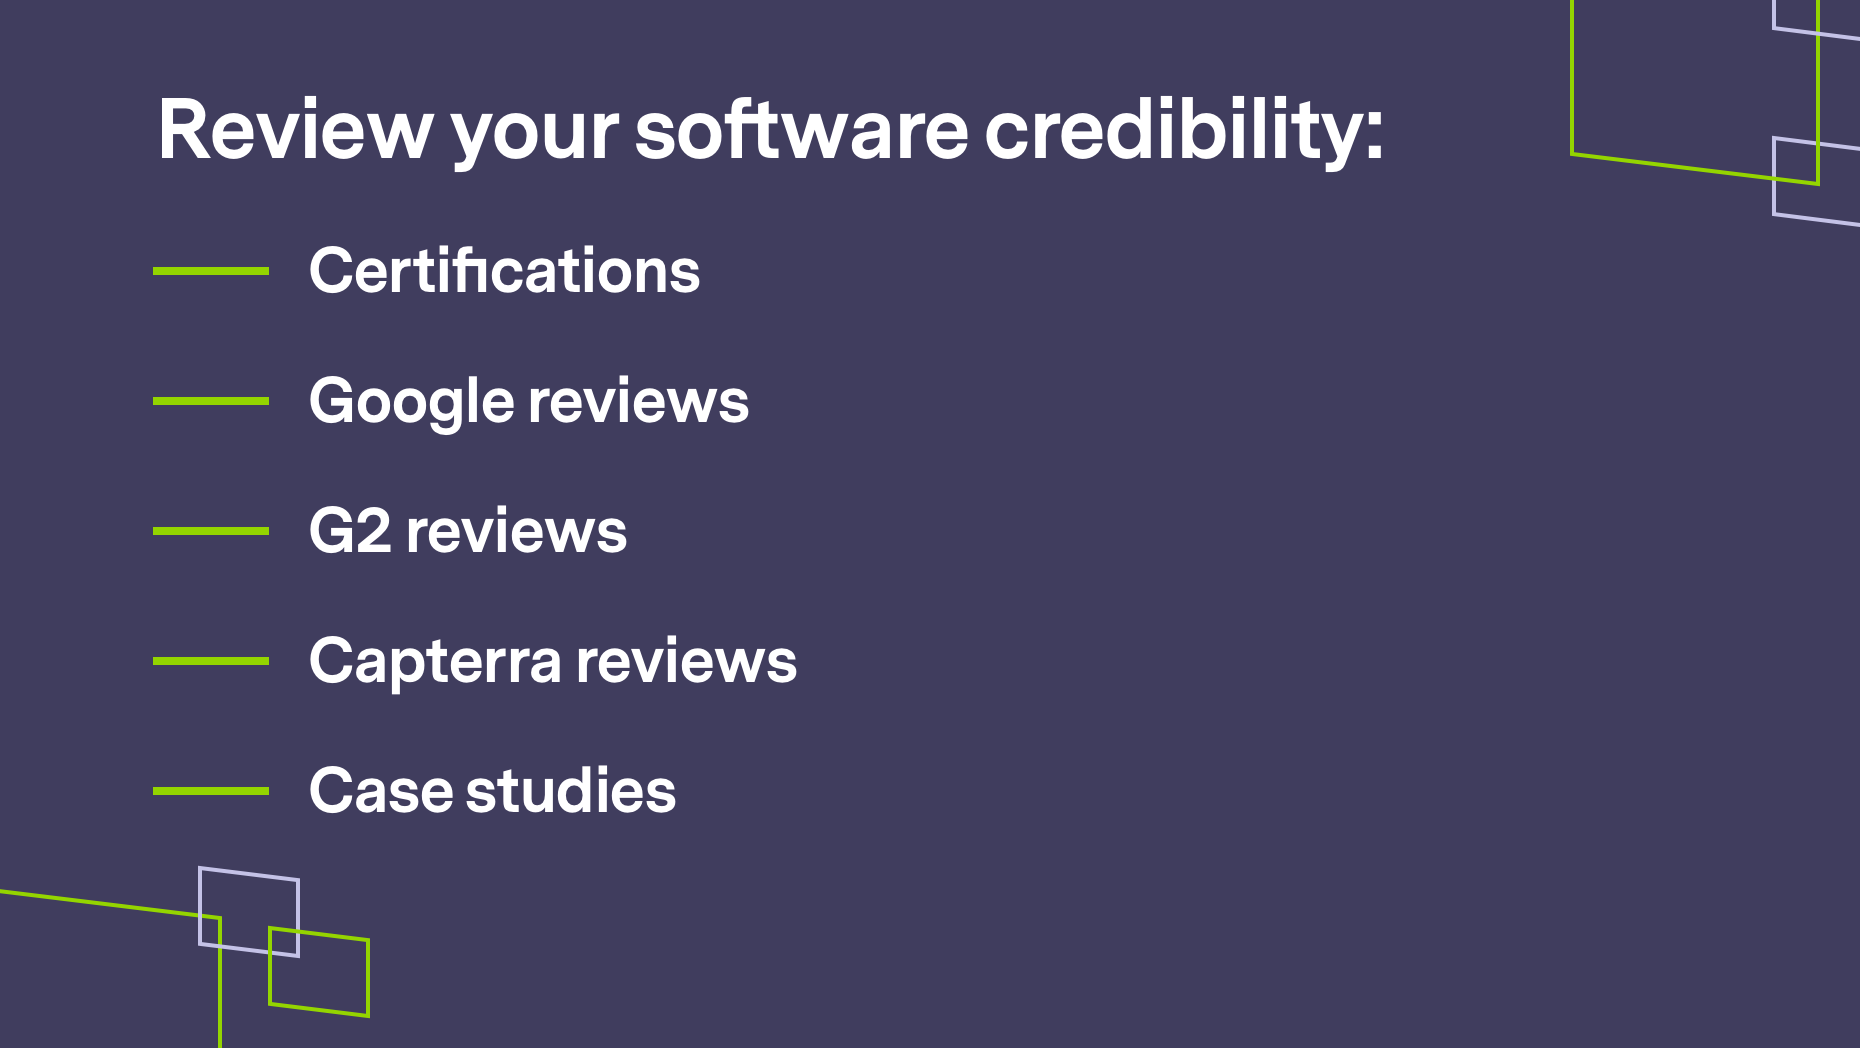 Review software credibility lsit, brand shapes on purple